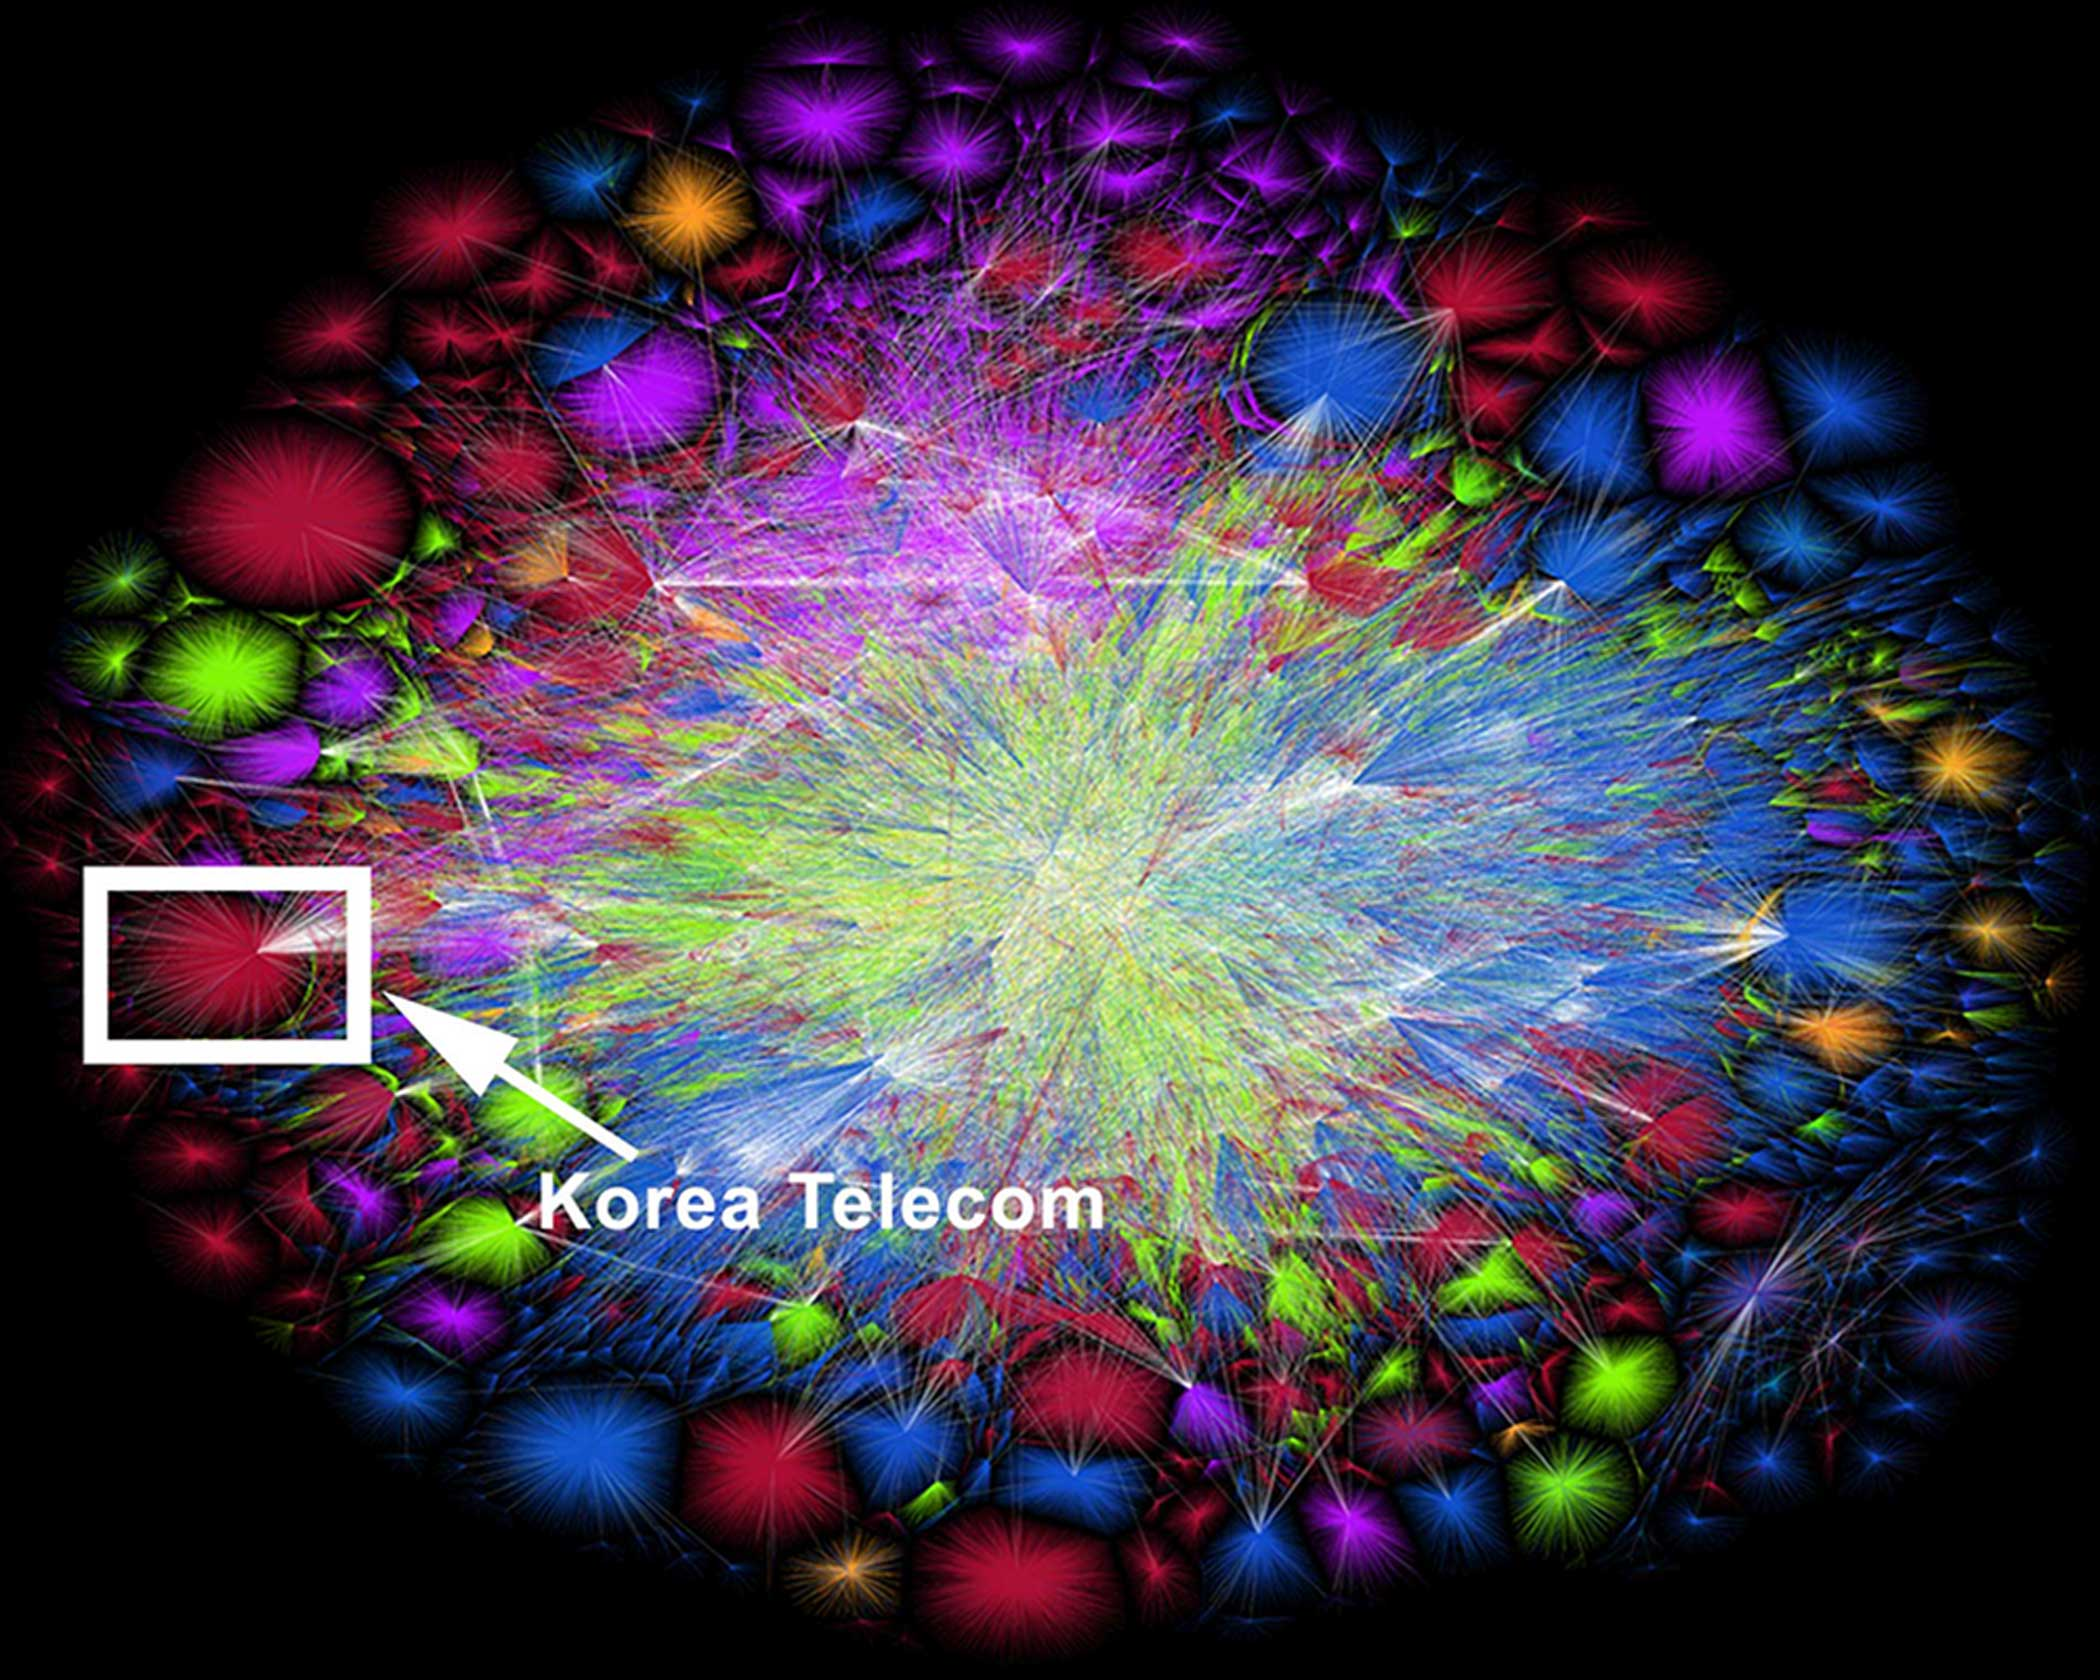 Korea Telecom, South Korea's largest internet provider, is a small part of the internet, but a closer look shows it is quite extensive.